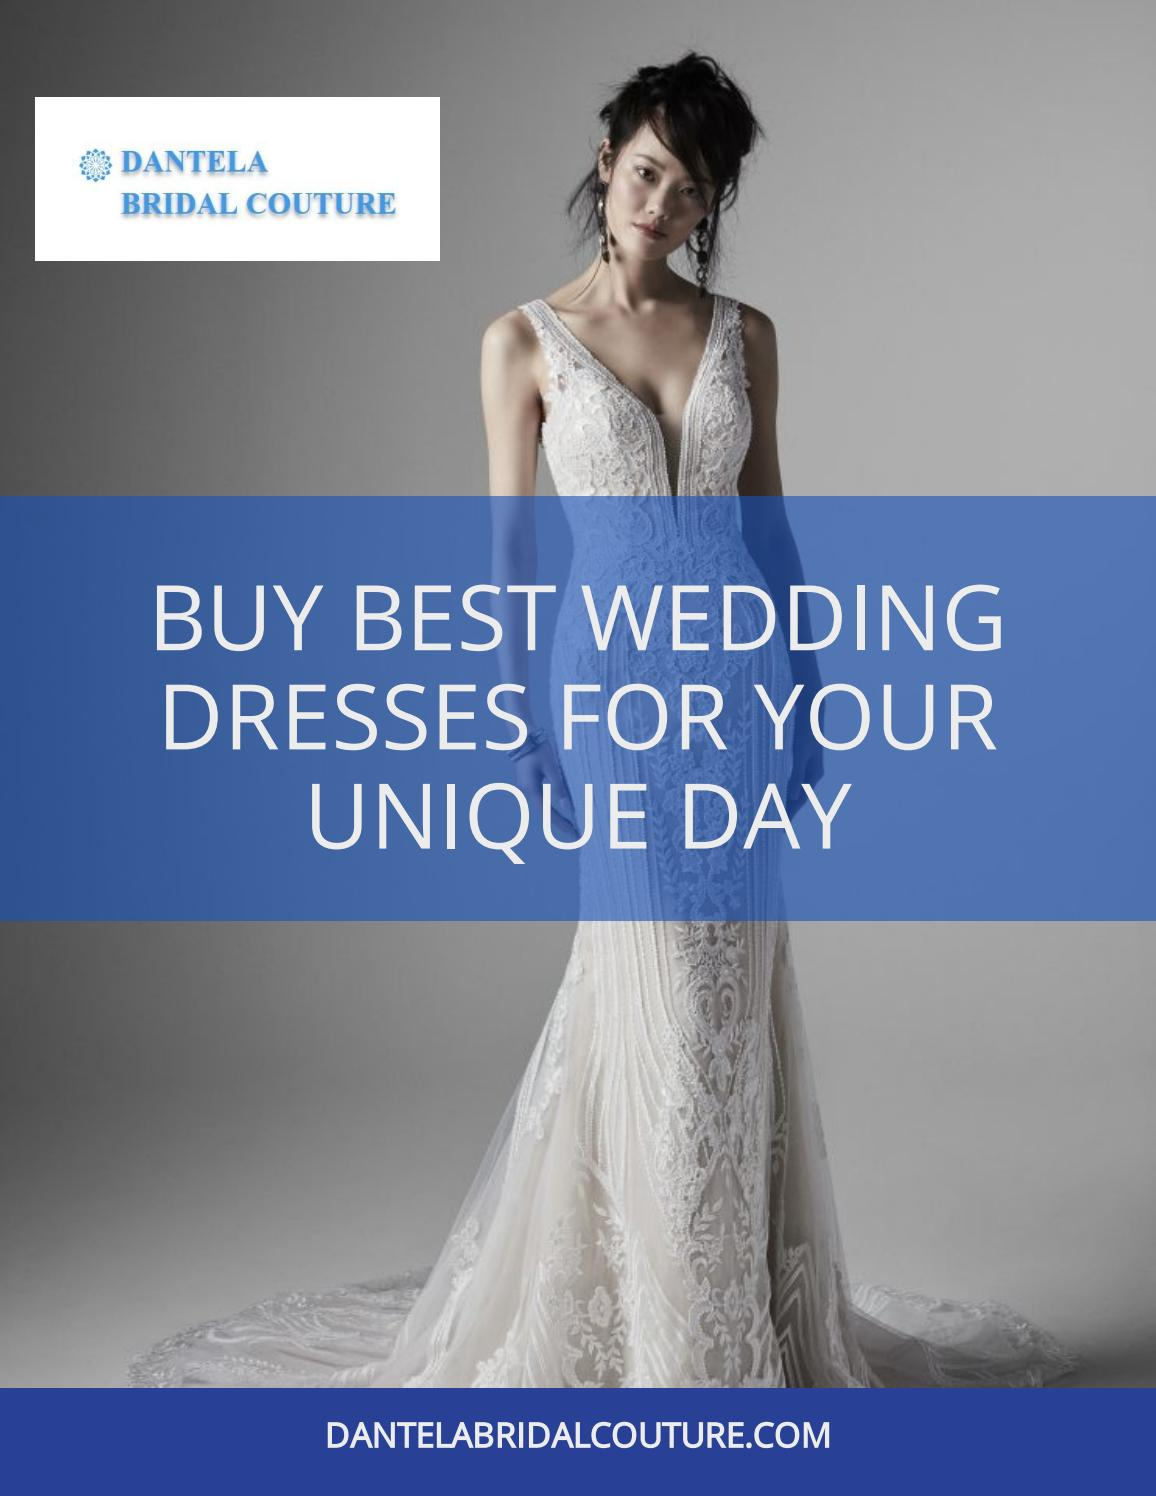 Wedding Dresses In Chicago by Dantela Bridal Couture   issuu